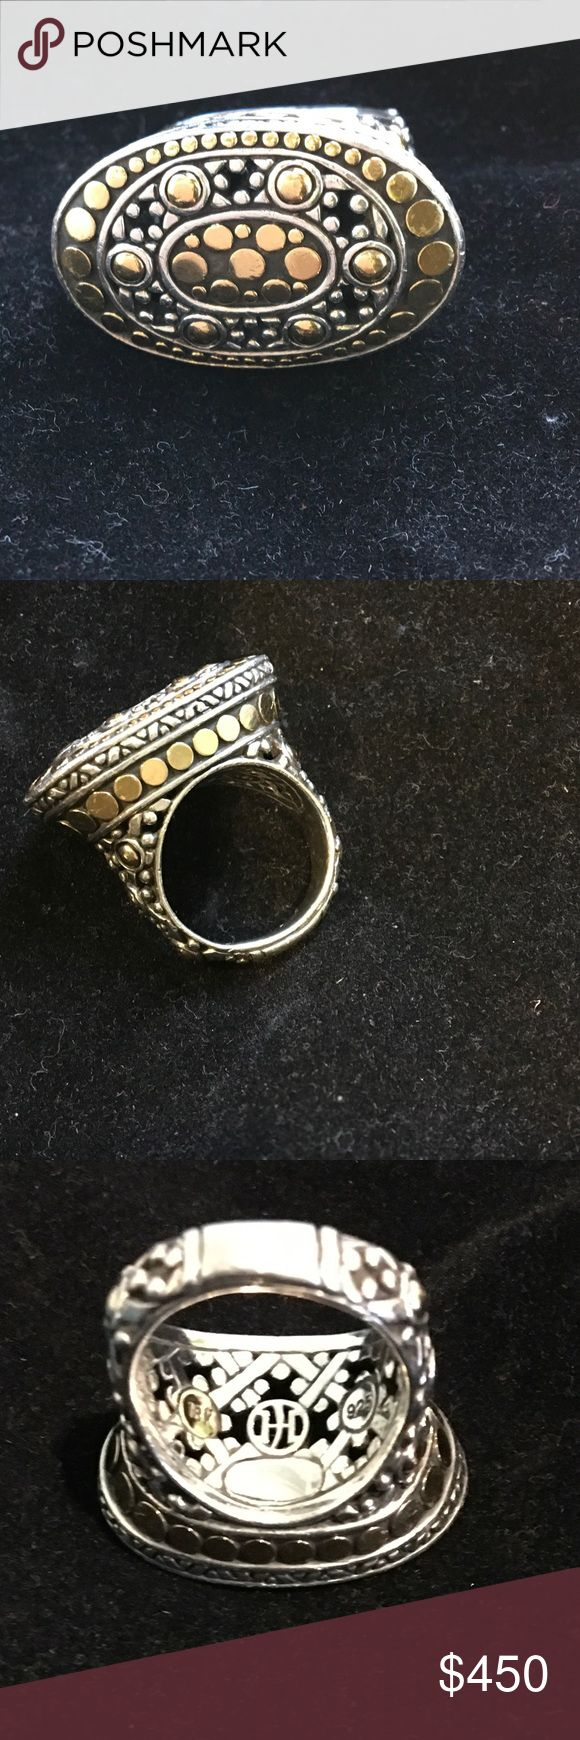 John Hardy Jaisalmer Dot Ring This is an Authentic John Hardy Ring from the Jaisalmer Dot collection. It features 18K yellow gold accents and sterling silver. The ring is in excellent condition with no signs of wear. John Hardy Jewelry Rings